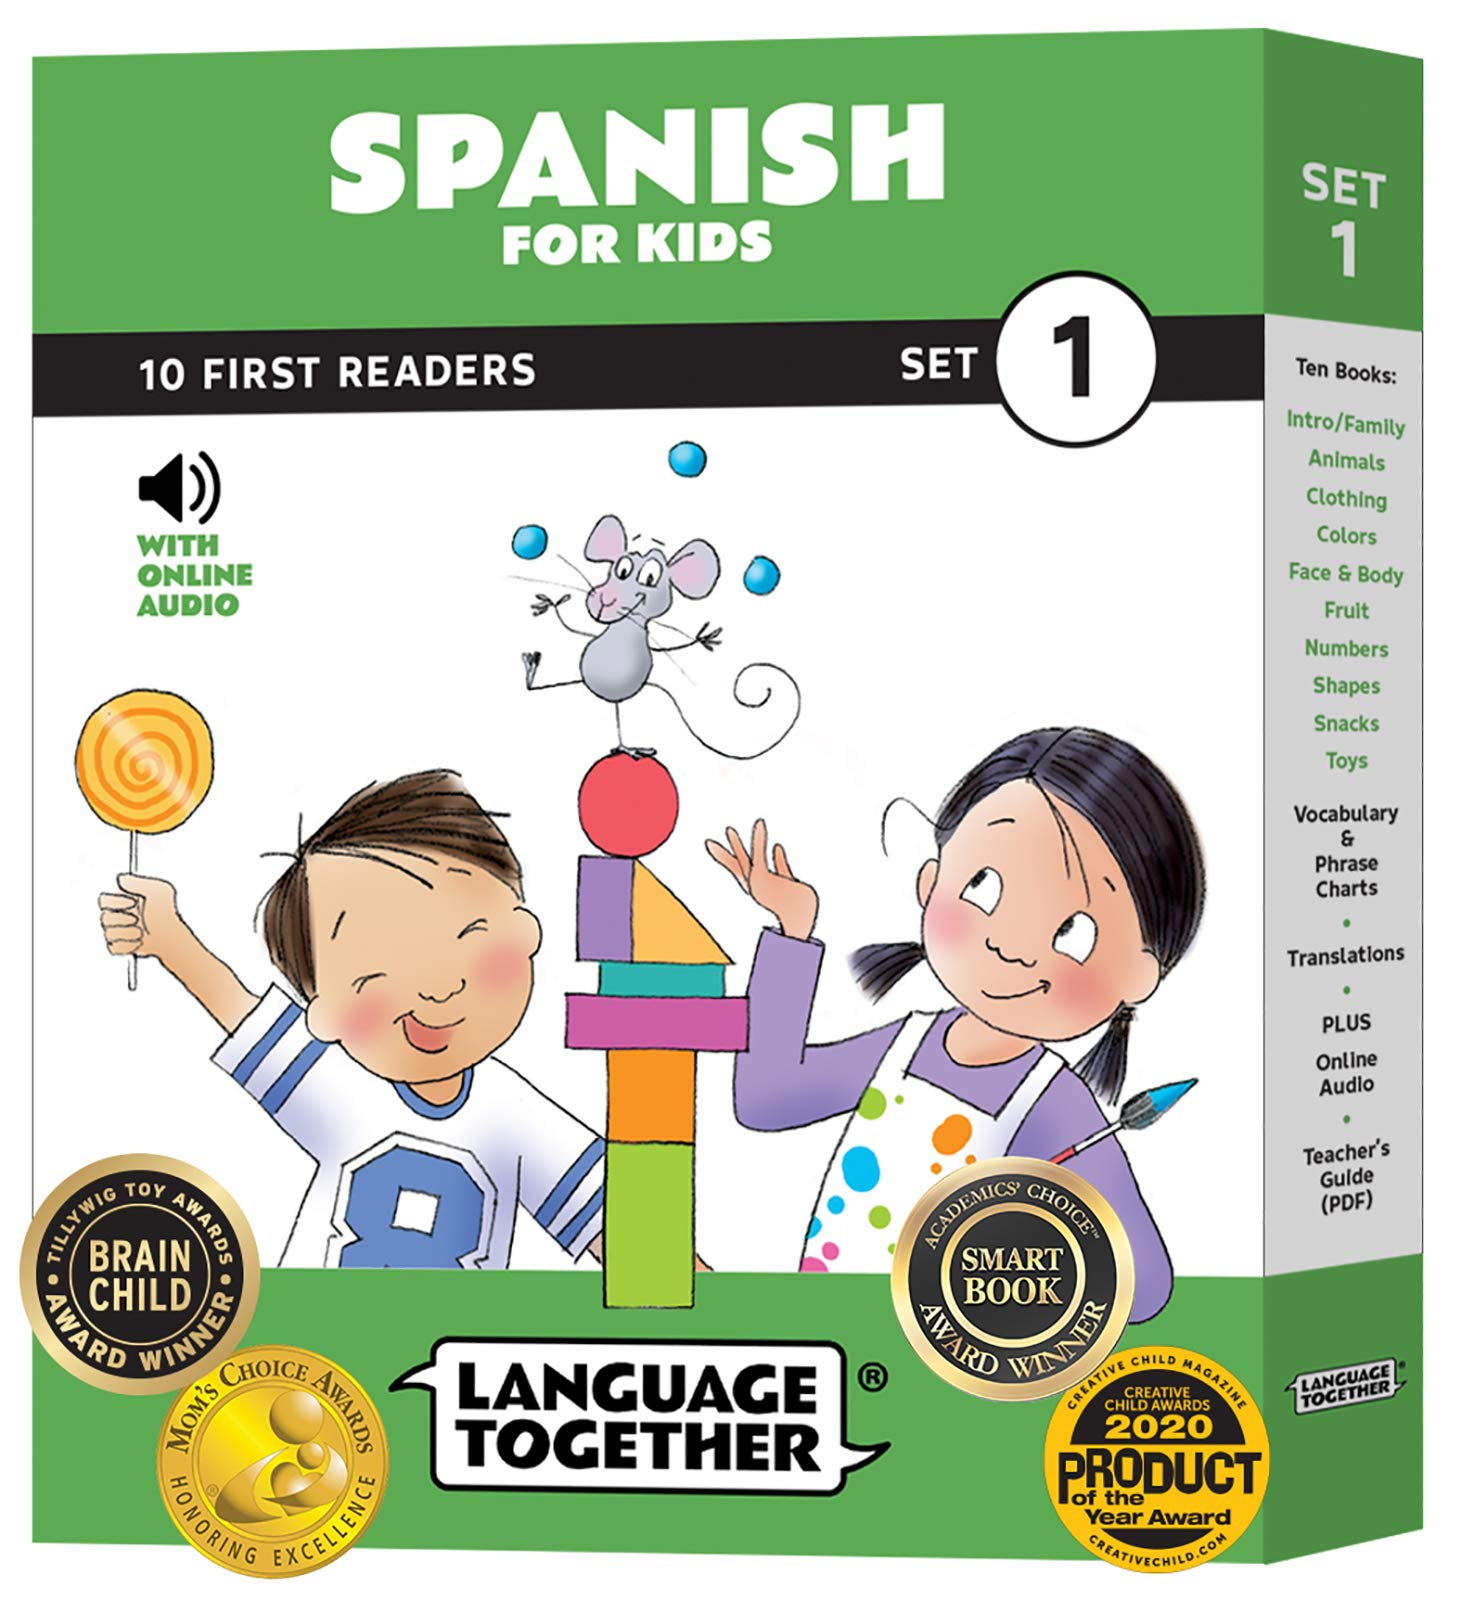 Spanish for Kids: 10 First Reader Books with Online Audio and 100 Words (Beginning to Learn Spanish Colors, Shapes, Numbers, Common Vocabulary) Set 1